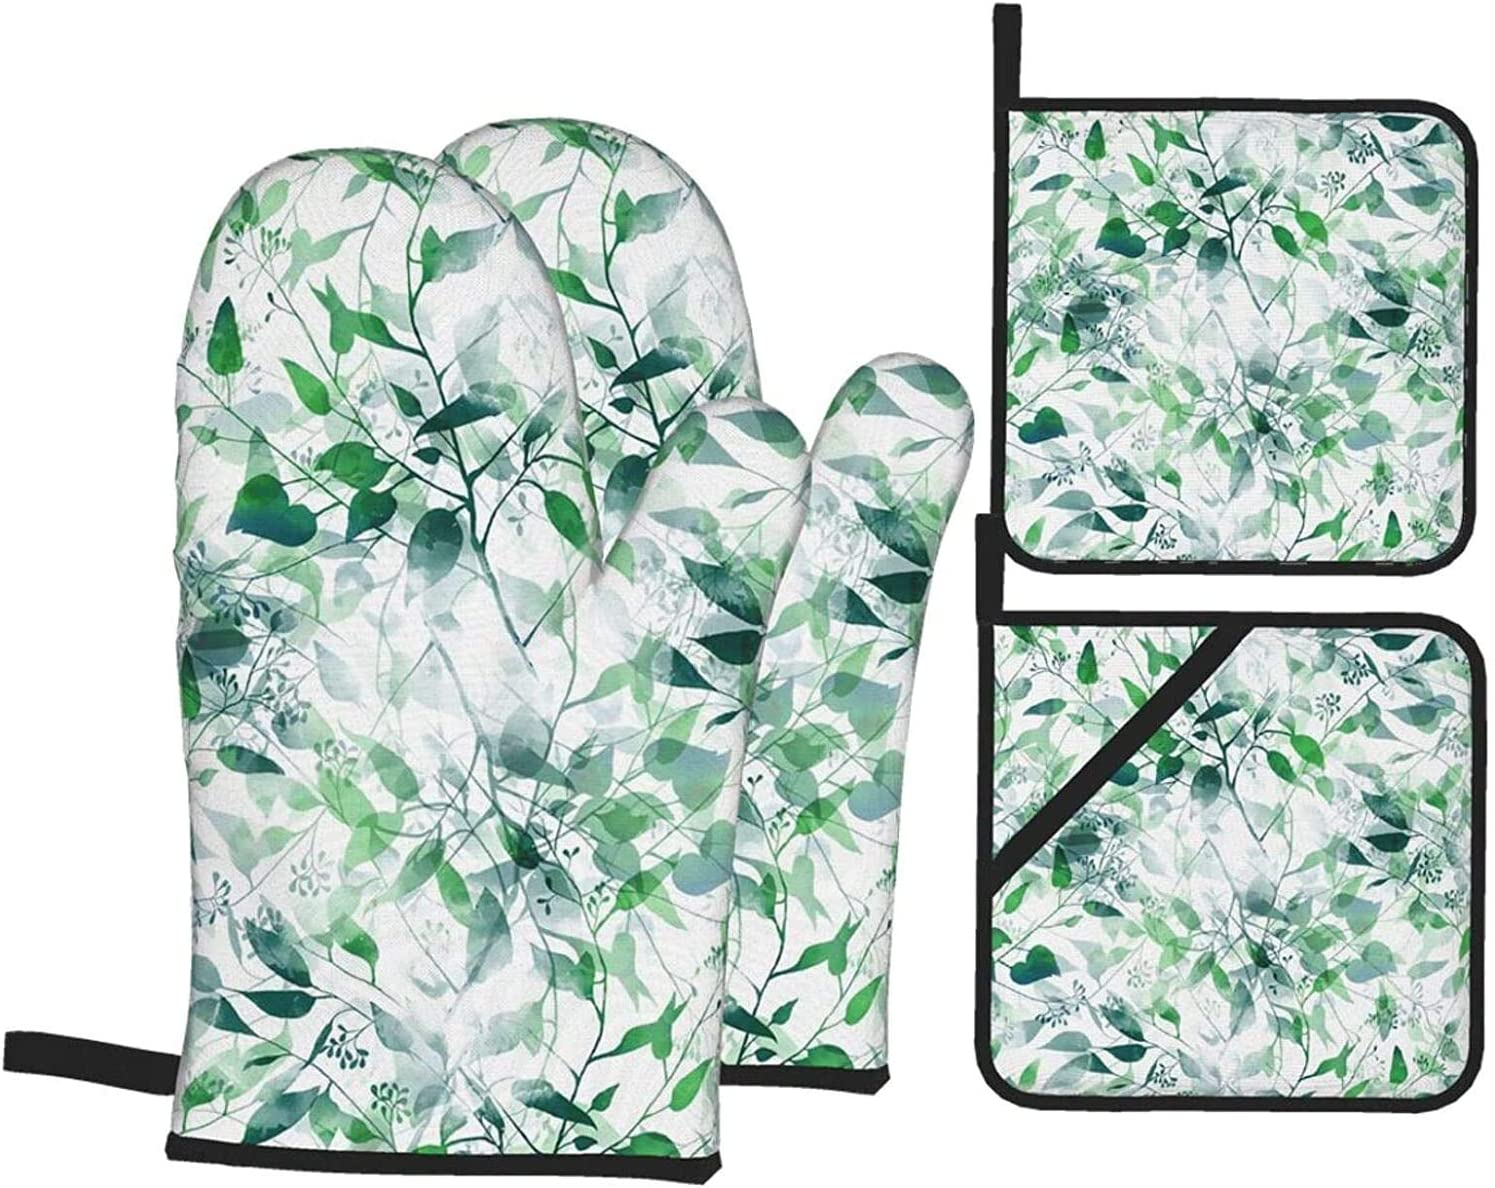 Imprints of Eucalyptus Leaves Oven Mitts Sets shopping and Pot Holders New color